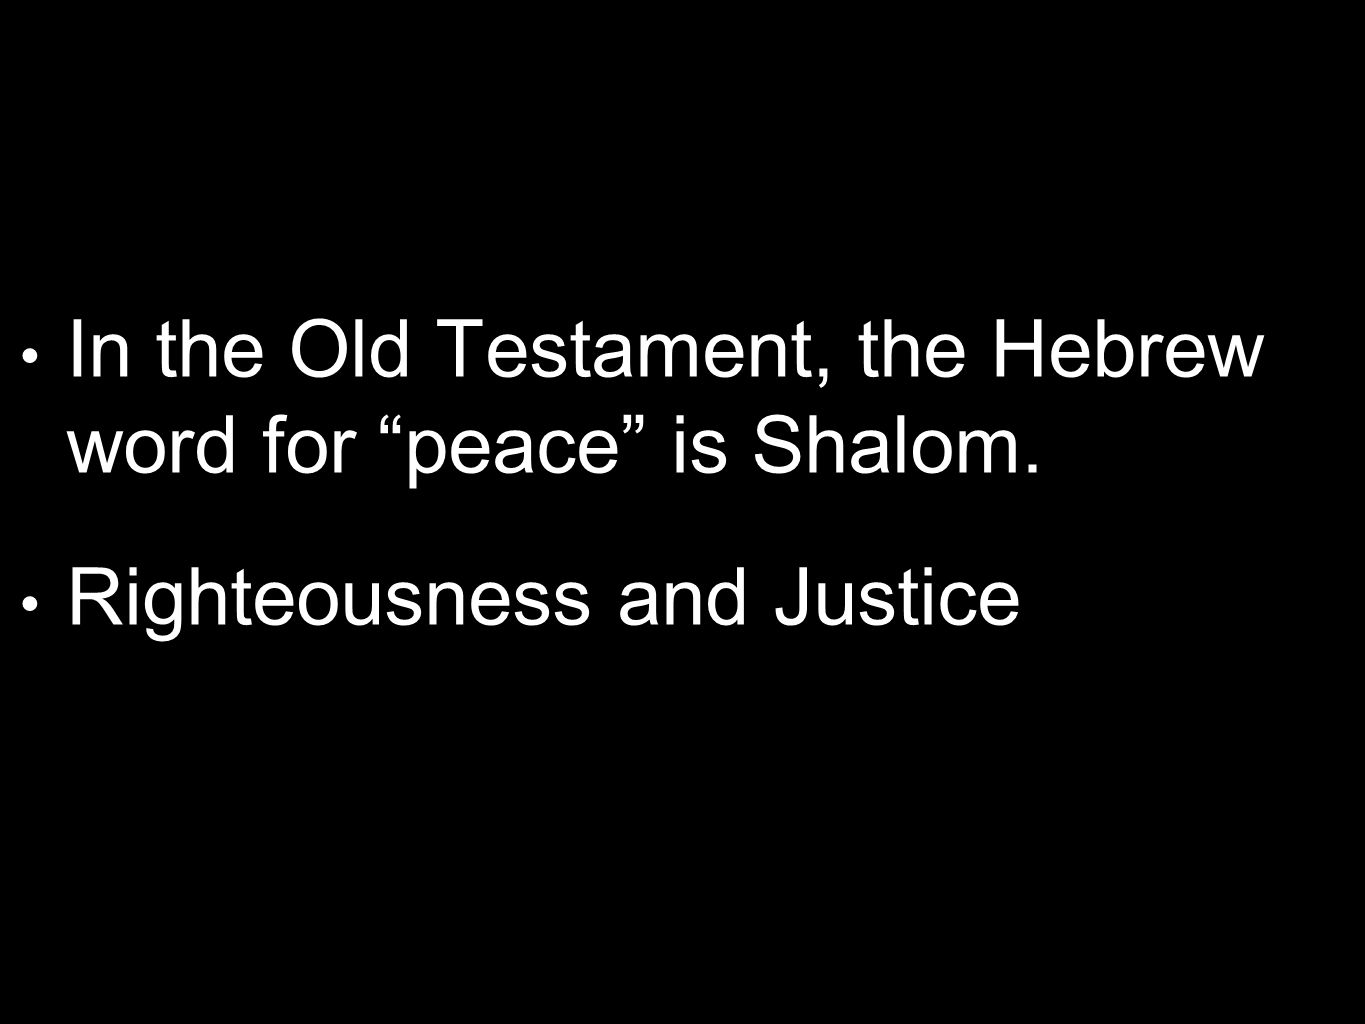 In the Old Testament, the Hebrew word for peace is Shalom. Righteousness and Justice